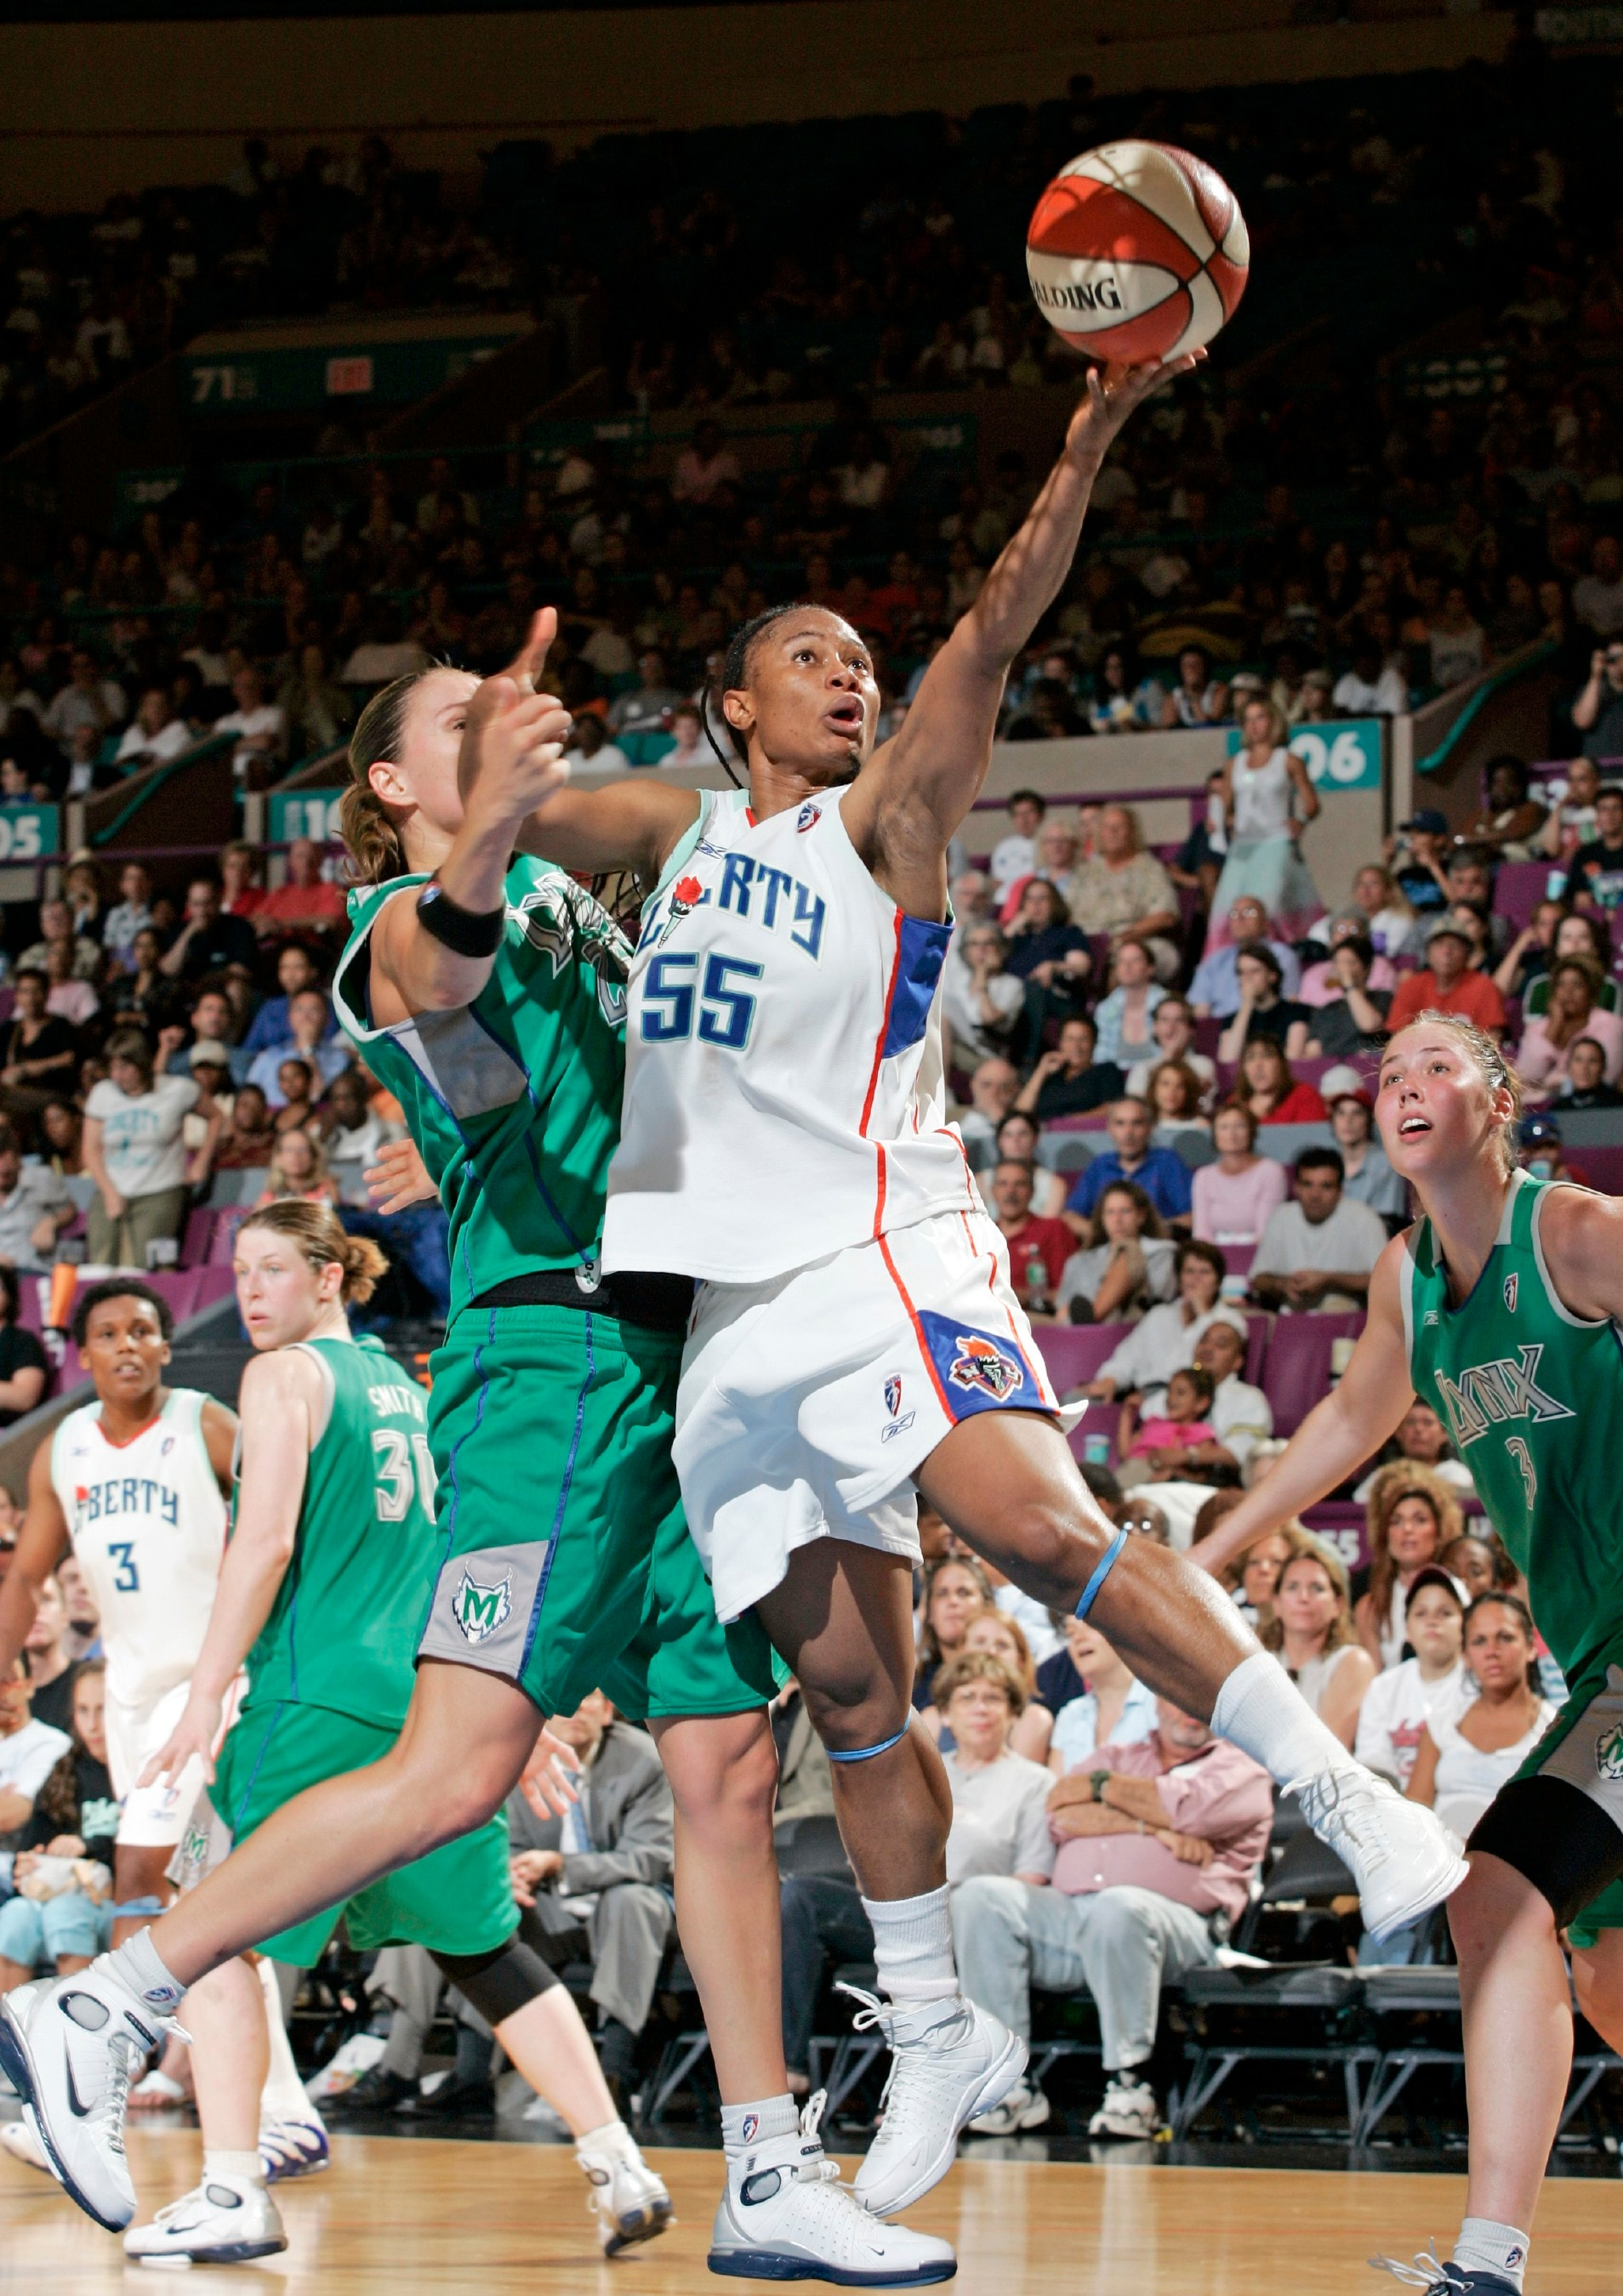 7/15/2005, Liberty v. Minnesota Lynx, Vickie Johnson.